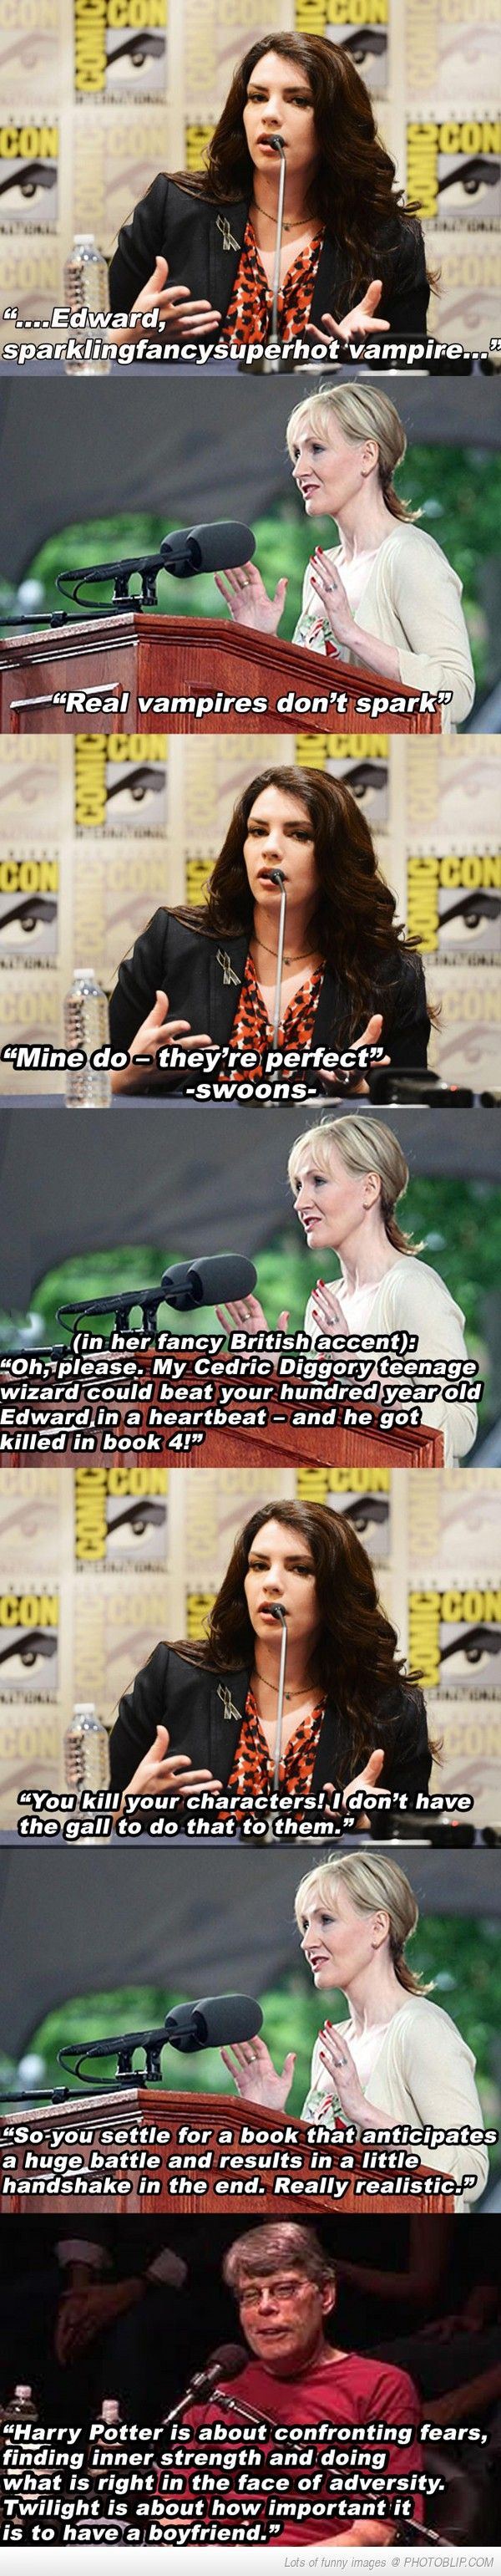 Stephanie Meyer And J.k. Rowling Debate. This is why I don't like Twilight.